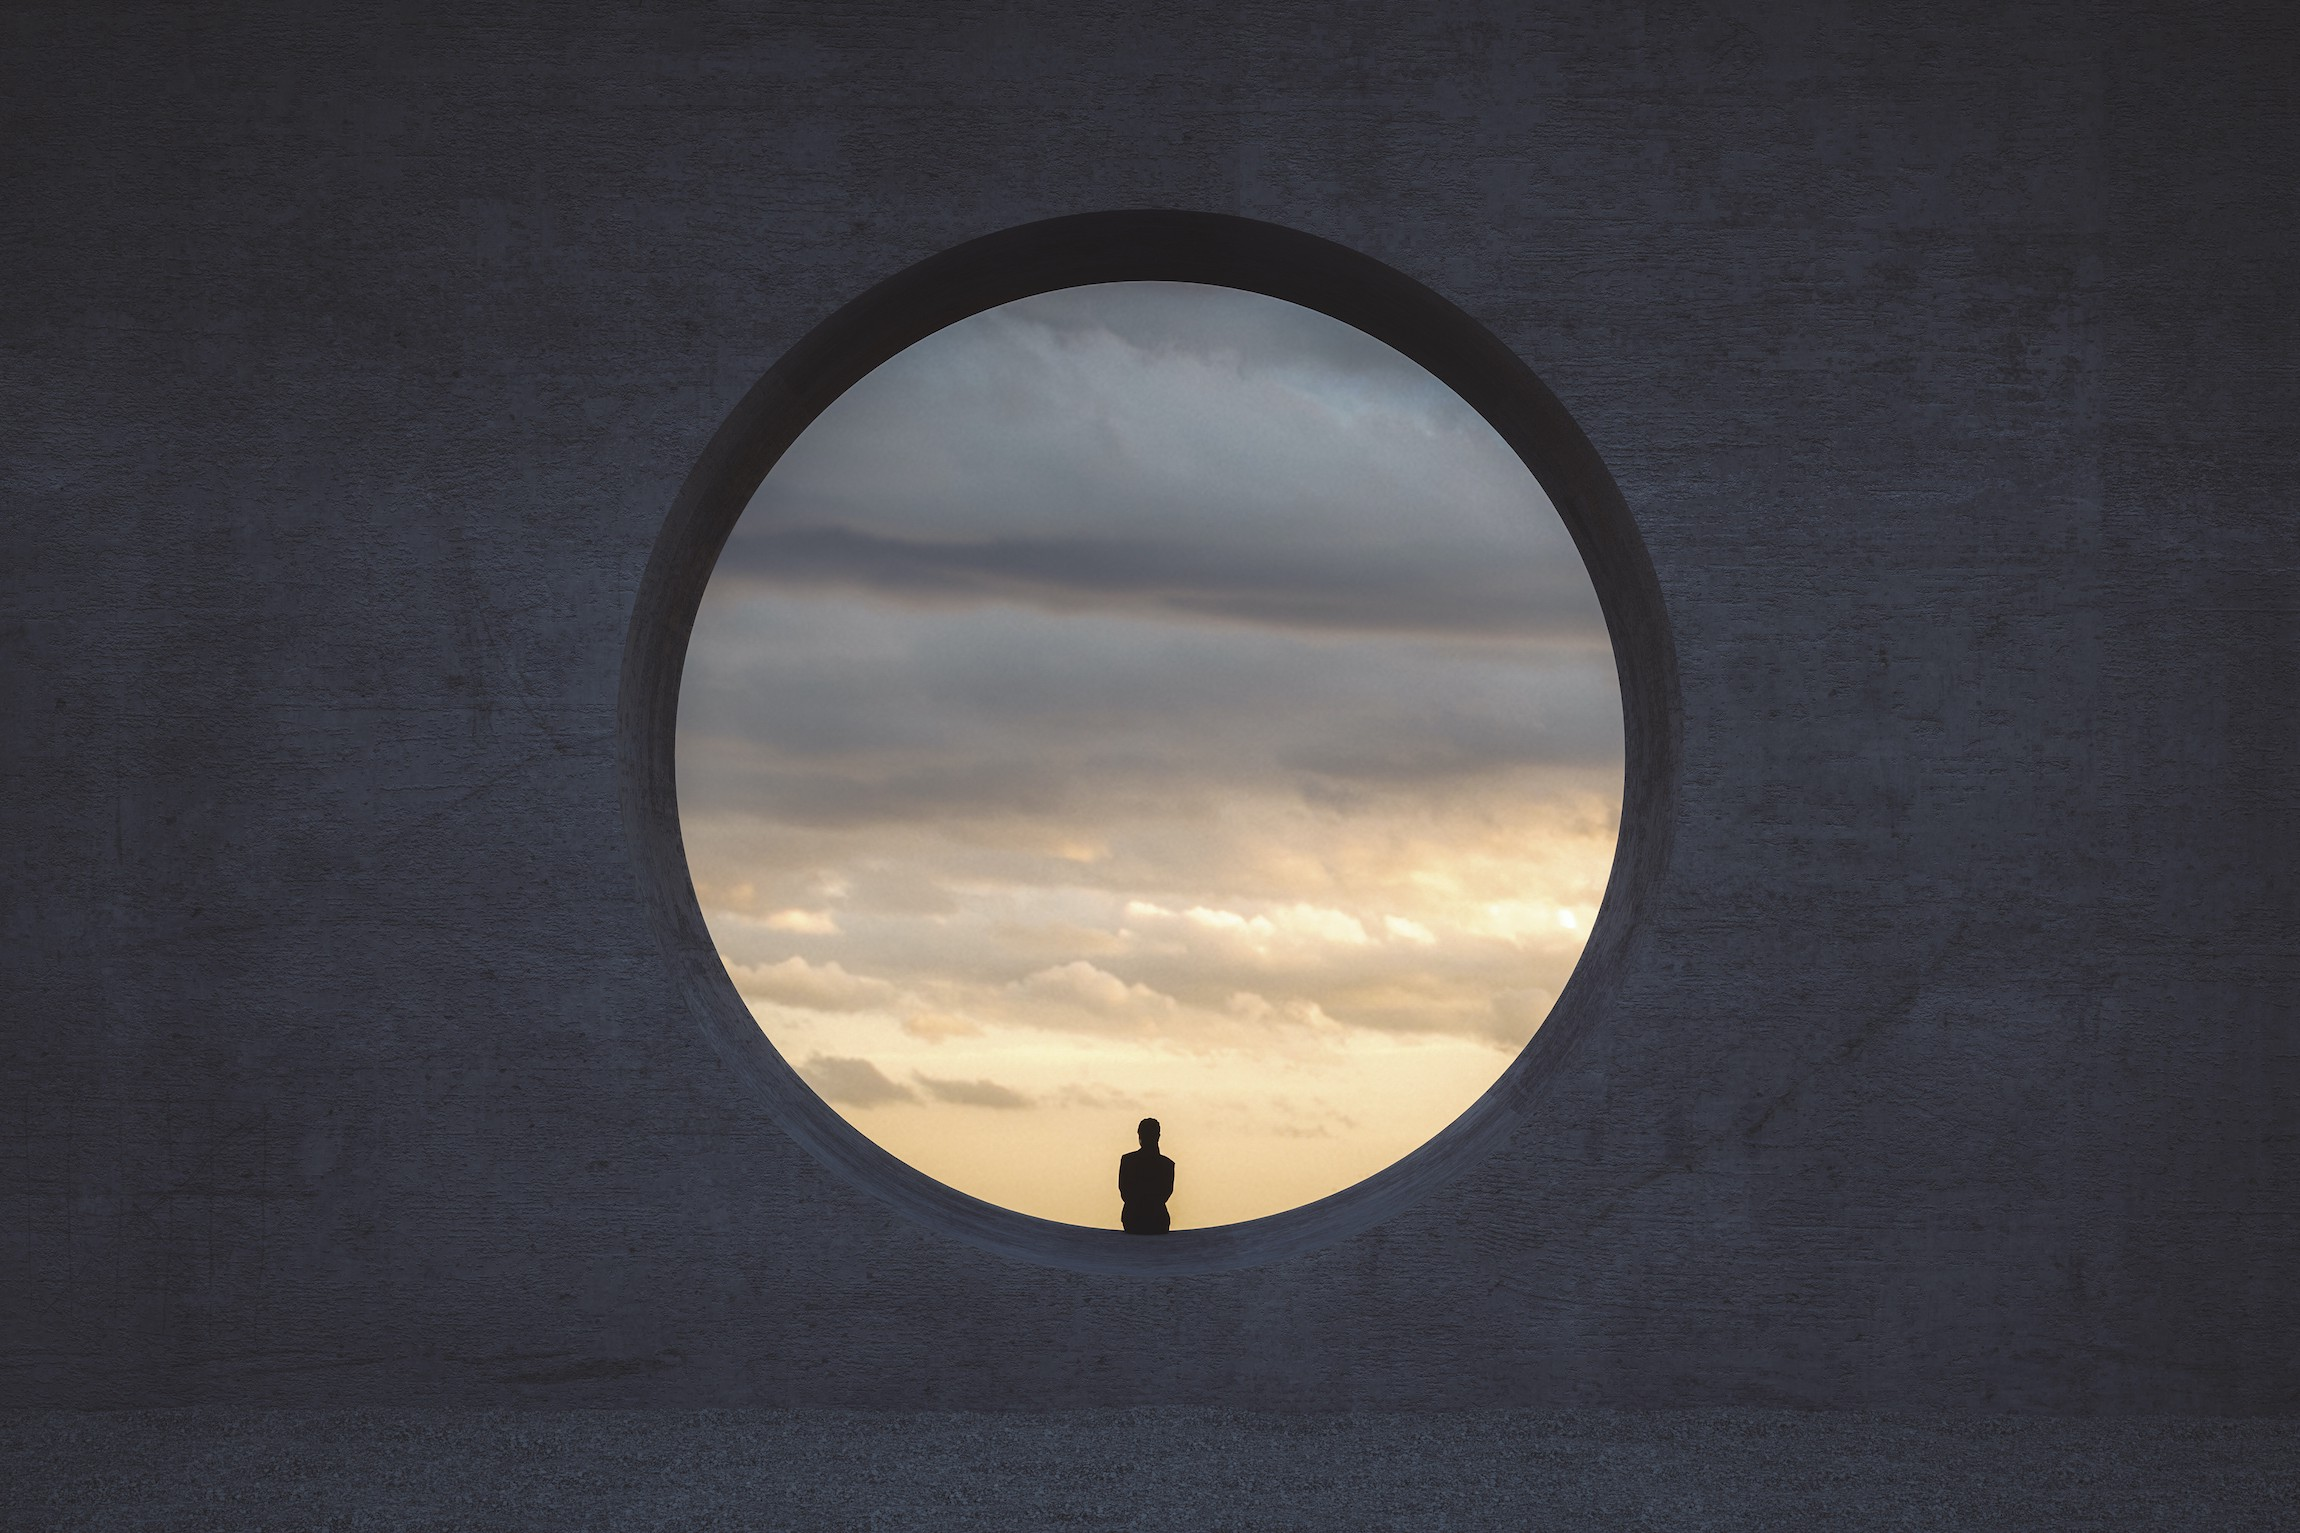 A person looking at a cloudy sky, sitting in a circular window that's almost 10 times taller than them.